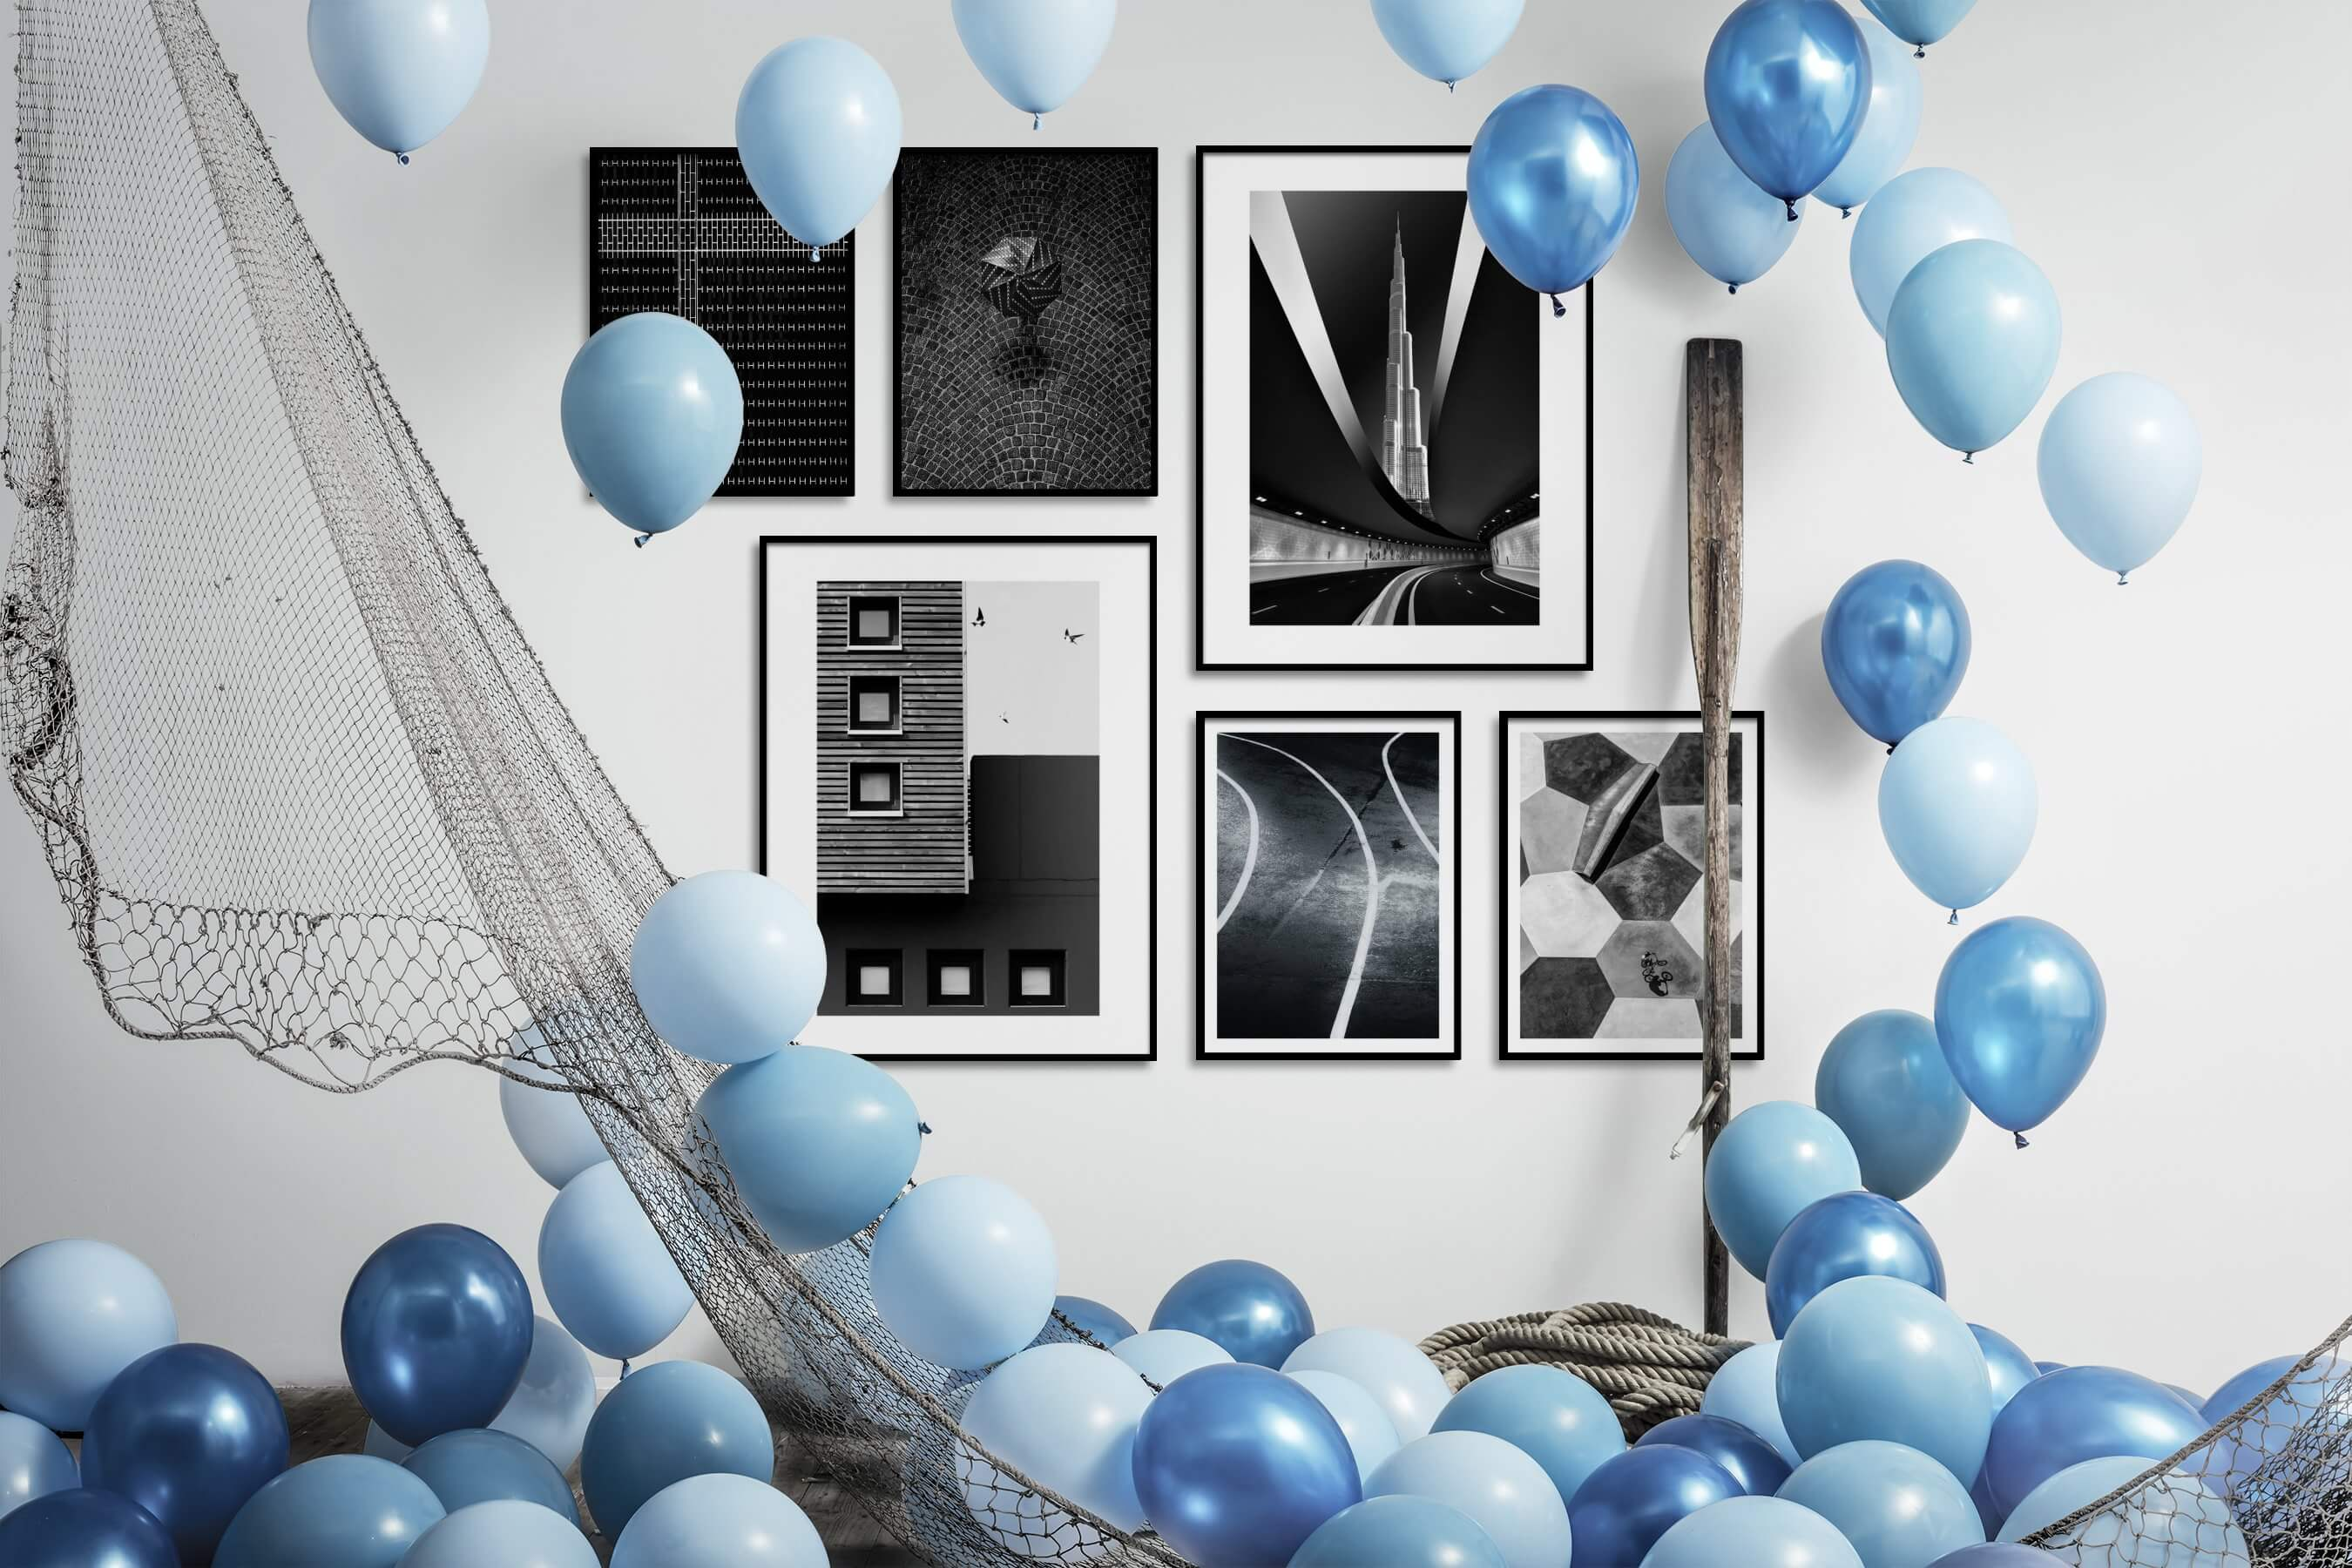 Gallery wall idea with six framed pictures arranged on a wall depicting Black & White, For the Maximalist, For the Minimalist, City Life, and For the Moderate